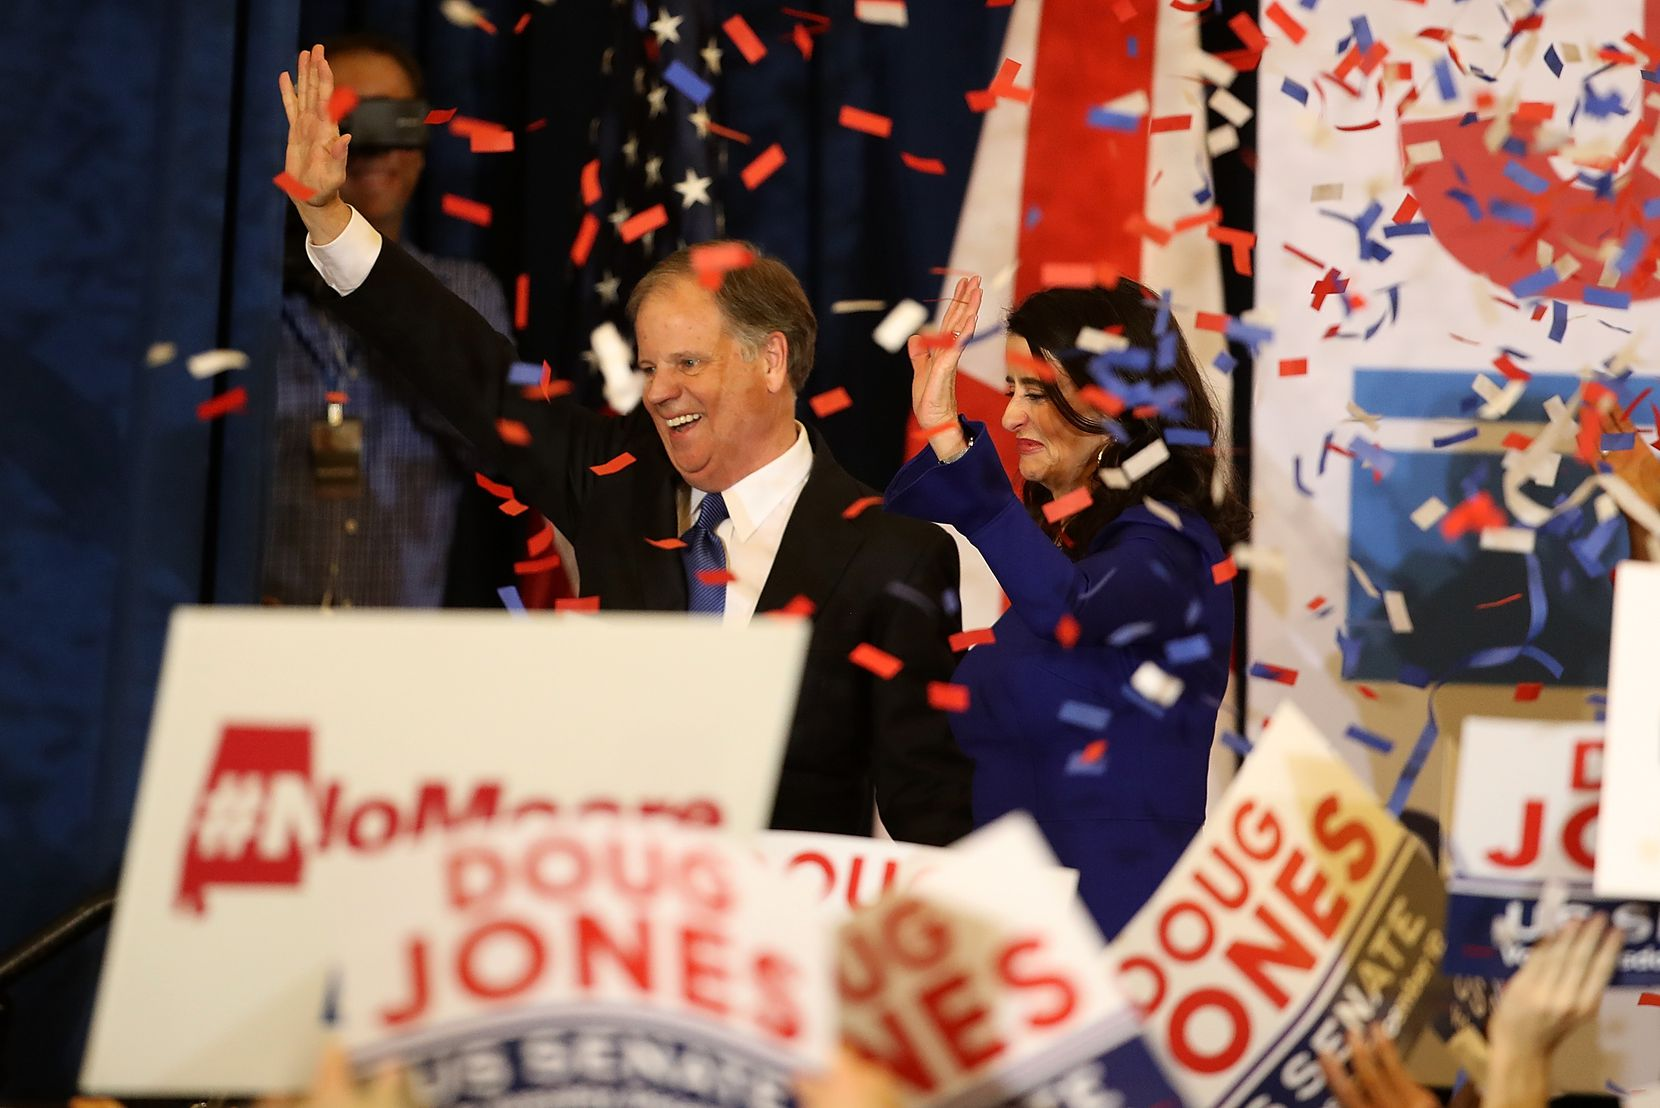 Sen.-elect Doug Jones and his wife, Louise Jones, greet supporters during his election night gathering Tuesday at the Sheraton Hotel in Birmingham, Ala. Jones, a Democrat, defeated Roy Moore, the Republican candidate dogged by sexual misconduct accusations, to claim the U.S. Senate seat vacated when Jeff Sessions became attorney general.